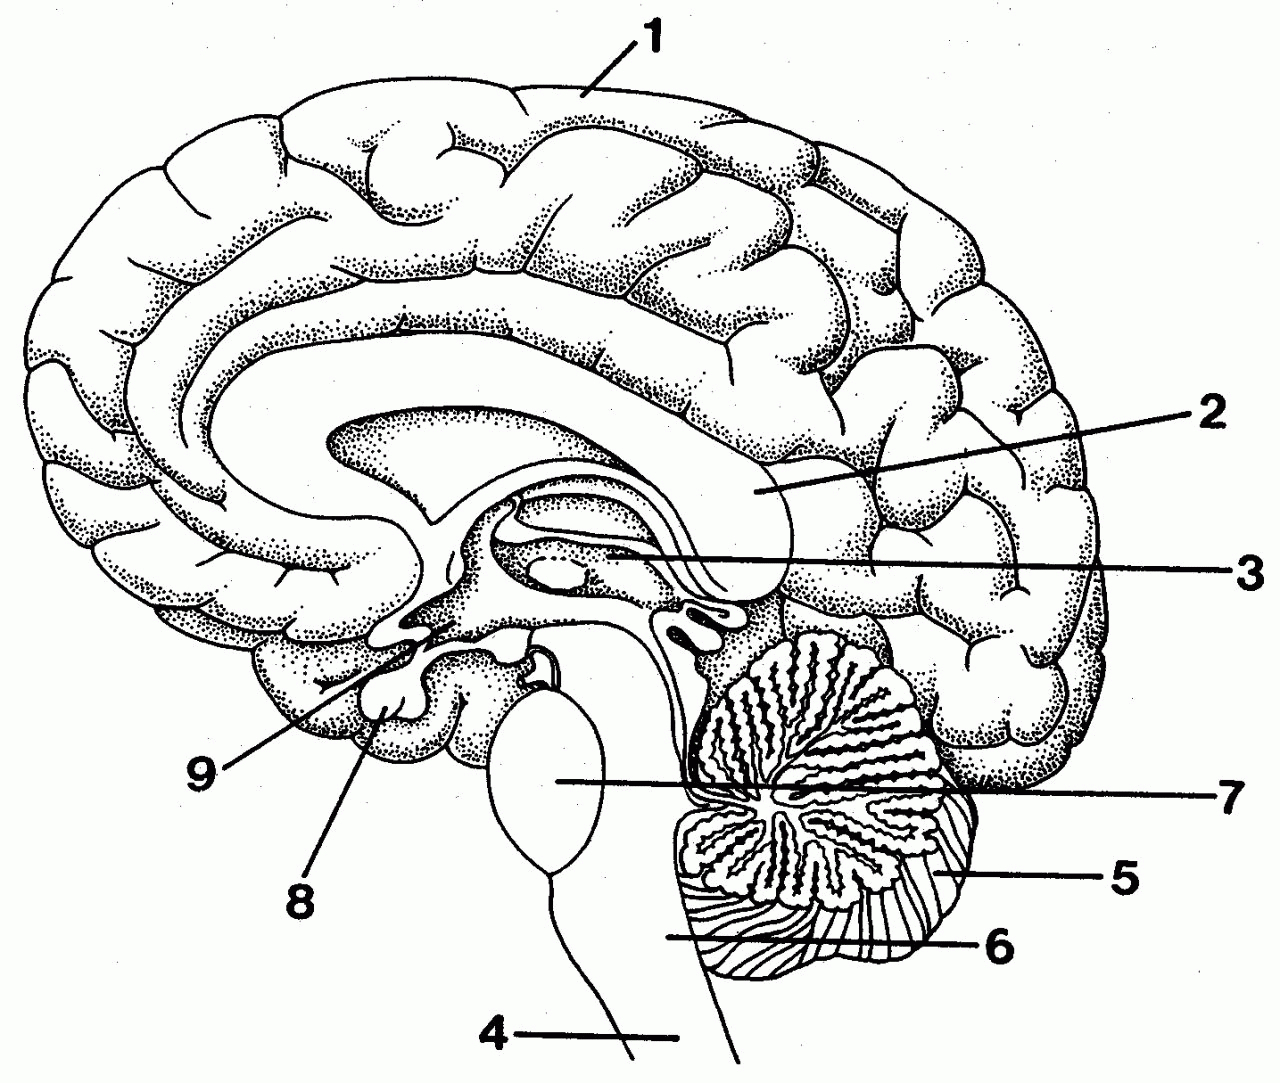 Simple brain drawing at getdrawings free for personal use 1280x1083 simple labeled pencil sketch diagram of human brain how to draw a ccuart Choice Image